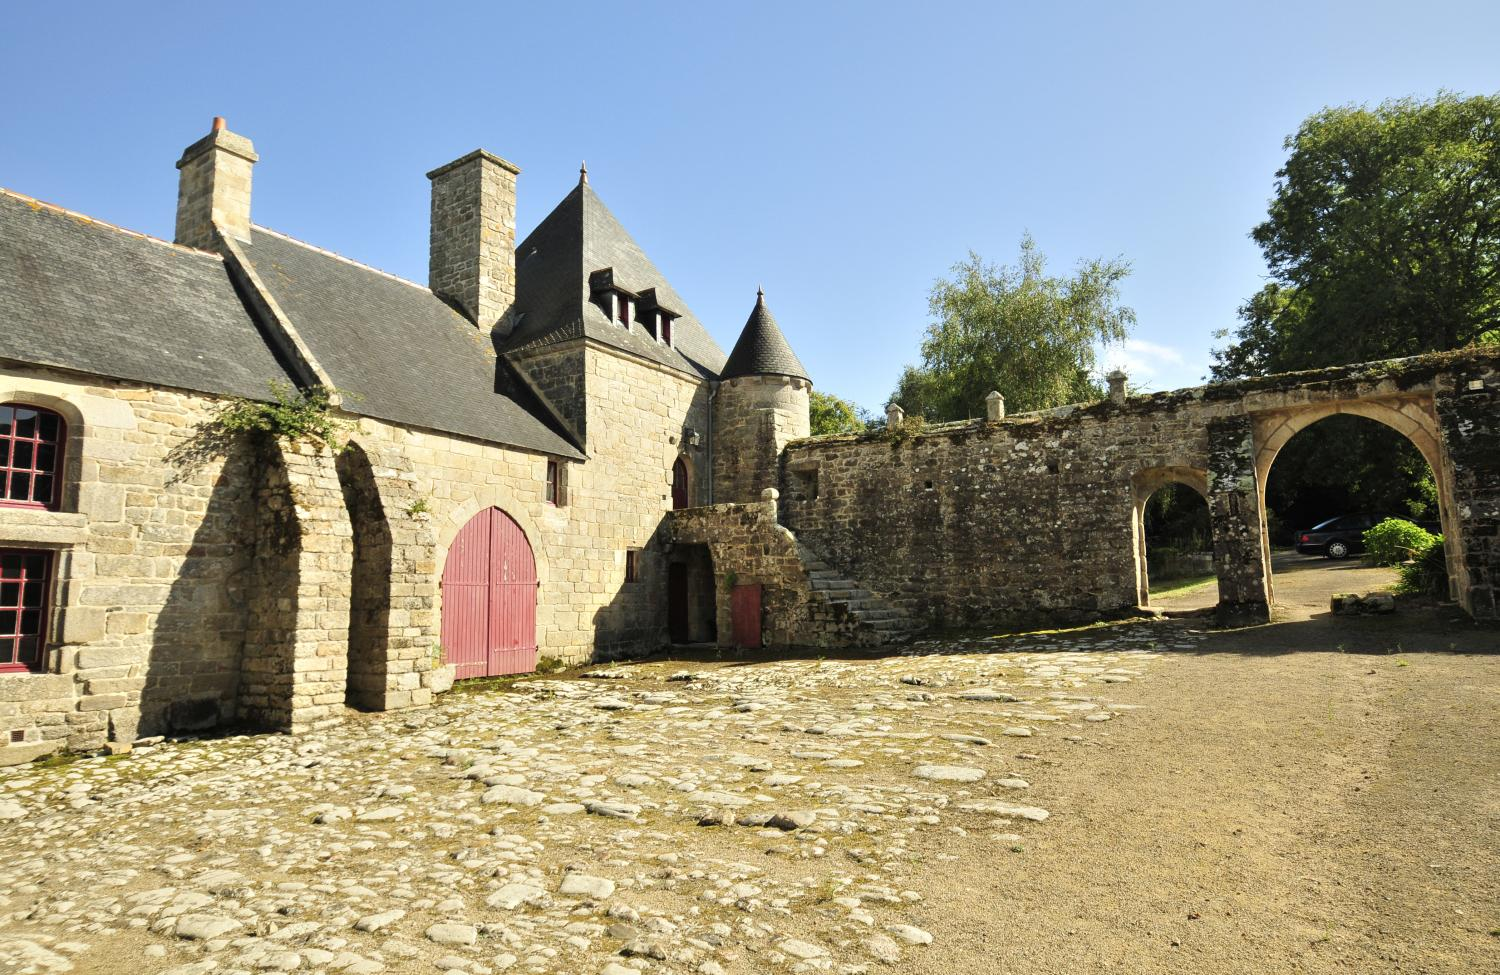 Private courtyard, Breton Manor - The Tower, Brittany, Audierne.